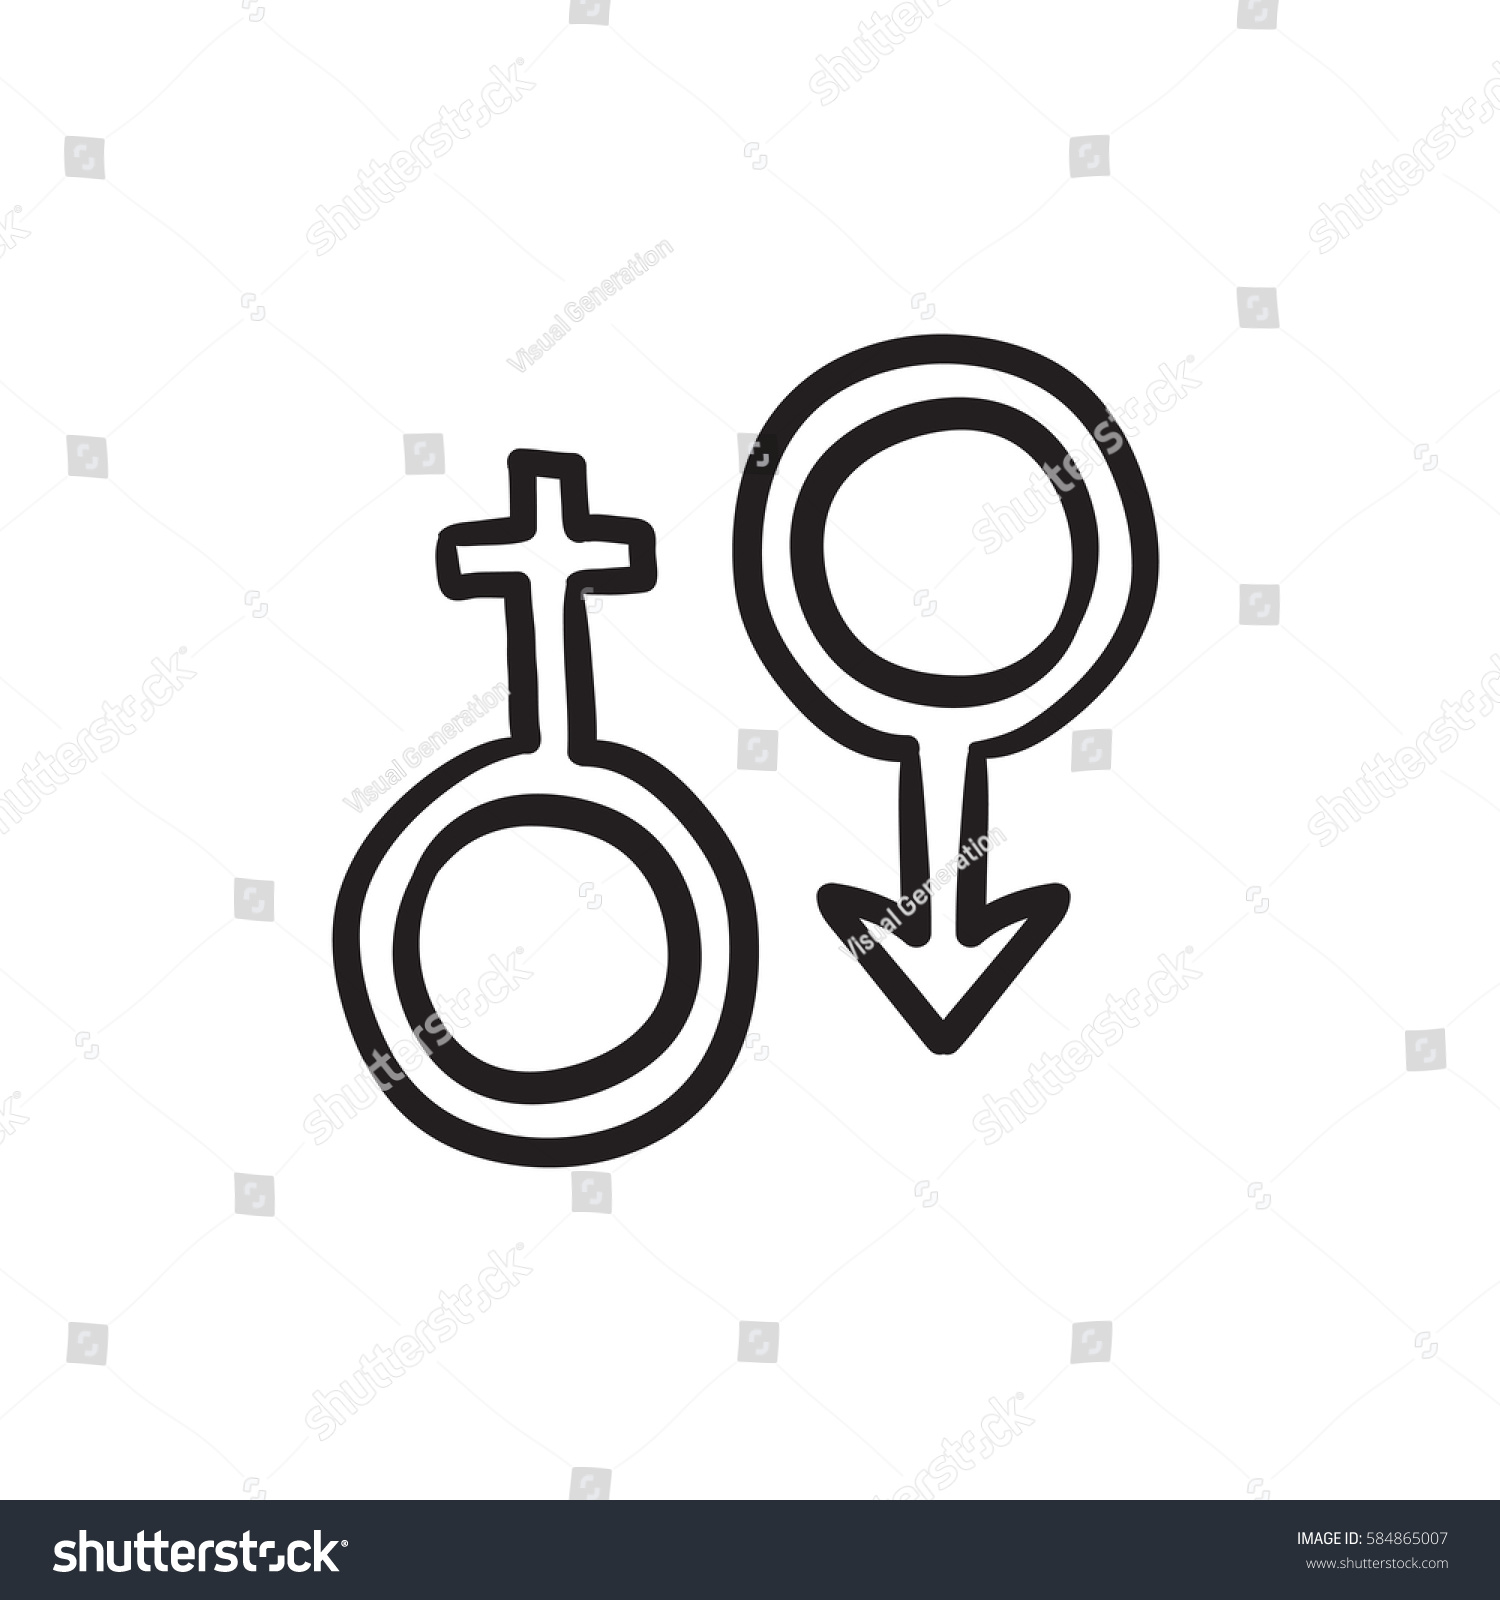 Male Female Symbol Vector Sketch Icon Stock Vector Royalty Free